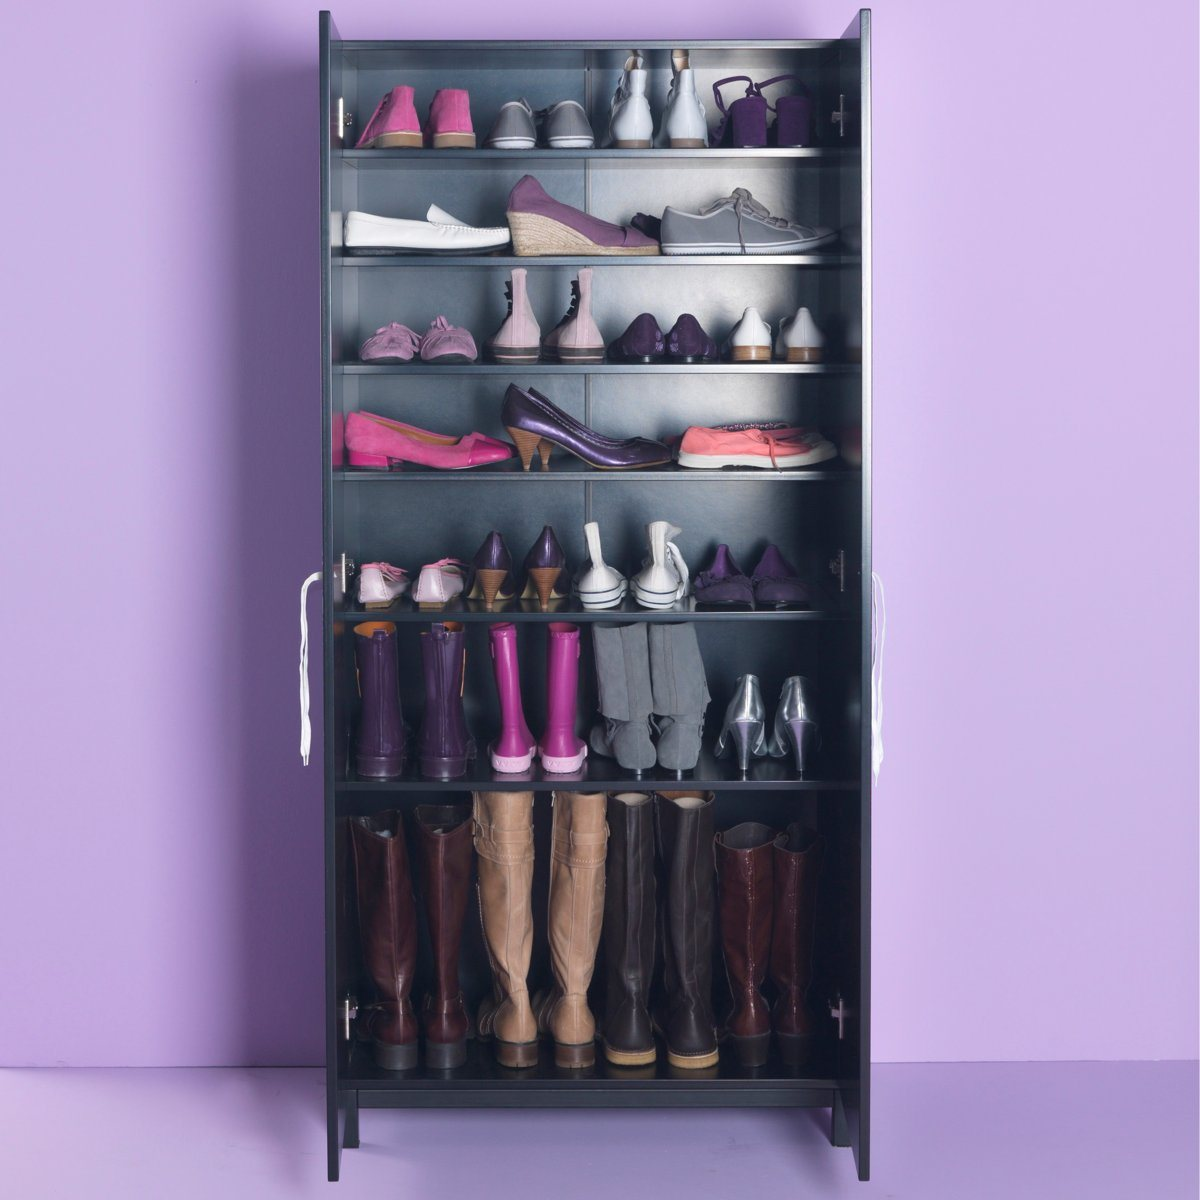 Etagere Chaussures Castorama Meuble Chaussure Castorama Good Meuble Chaussures Castorama Best